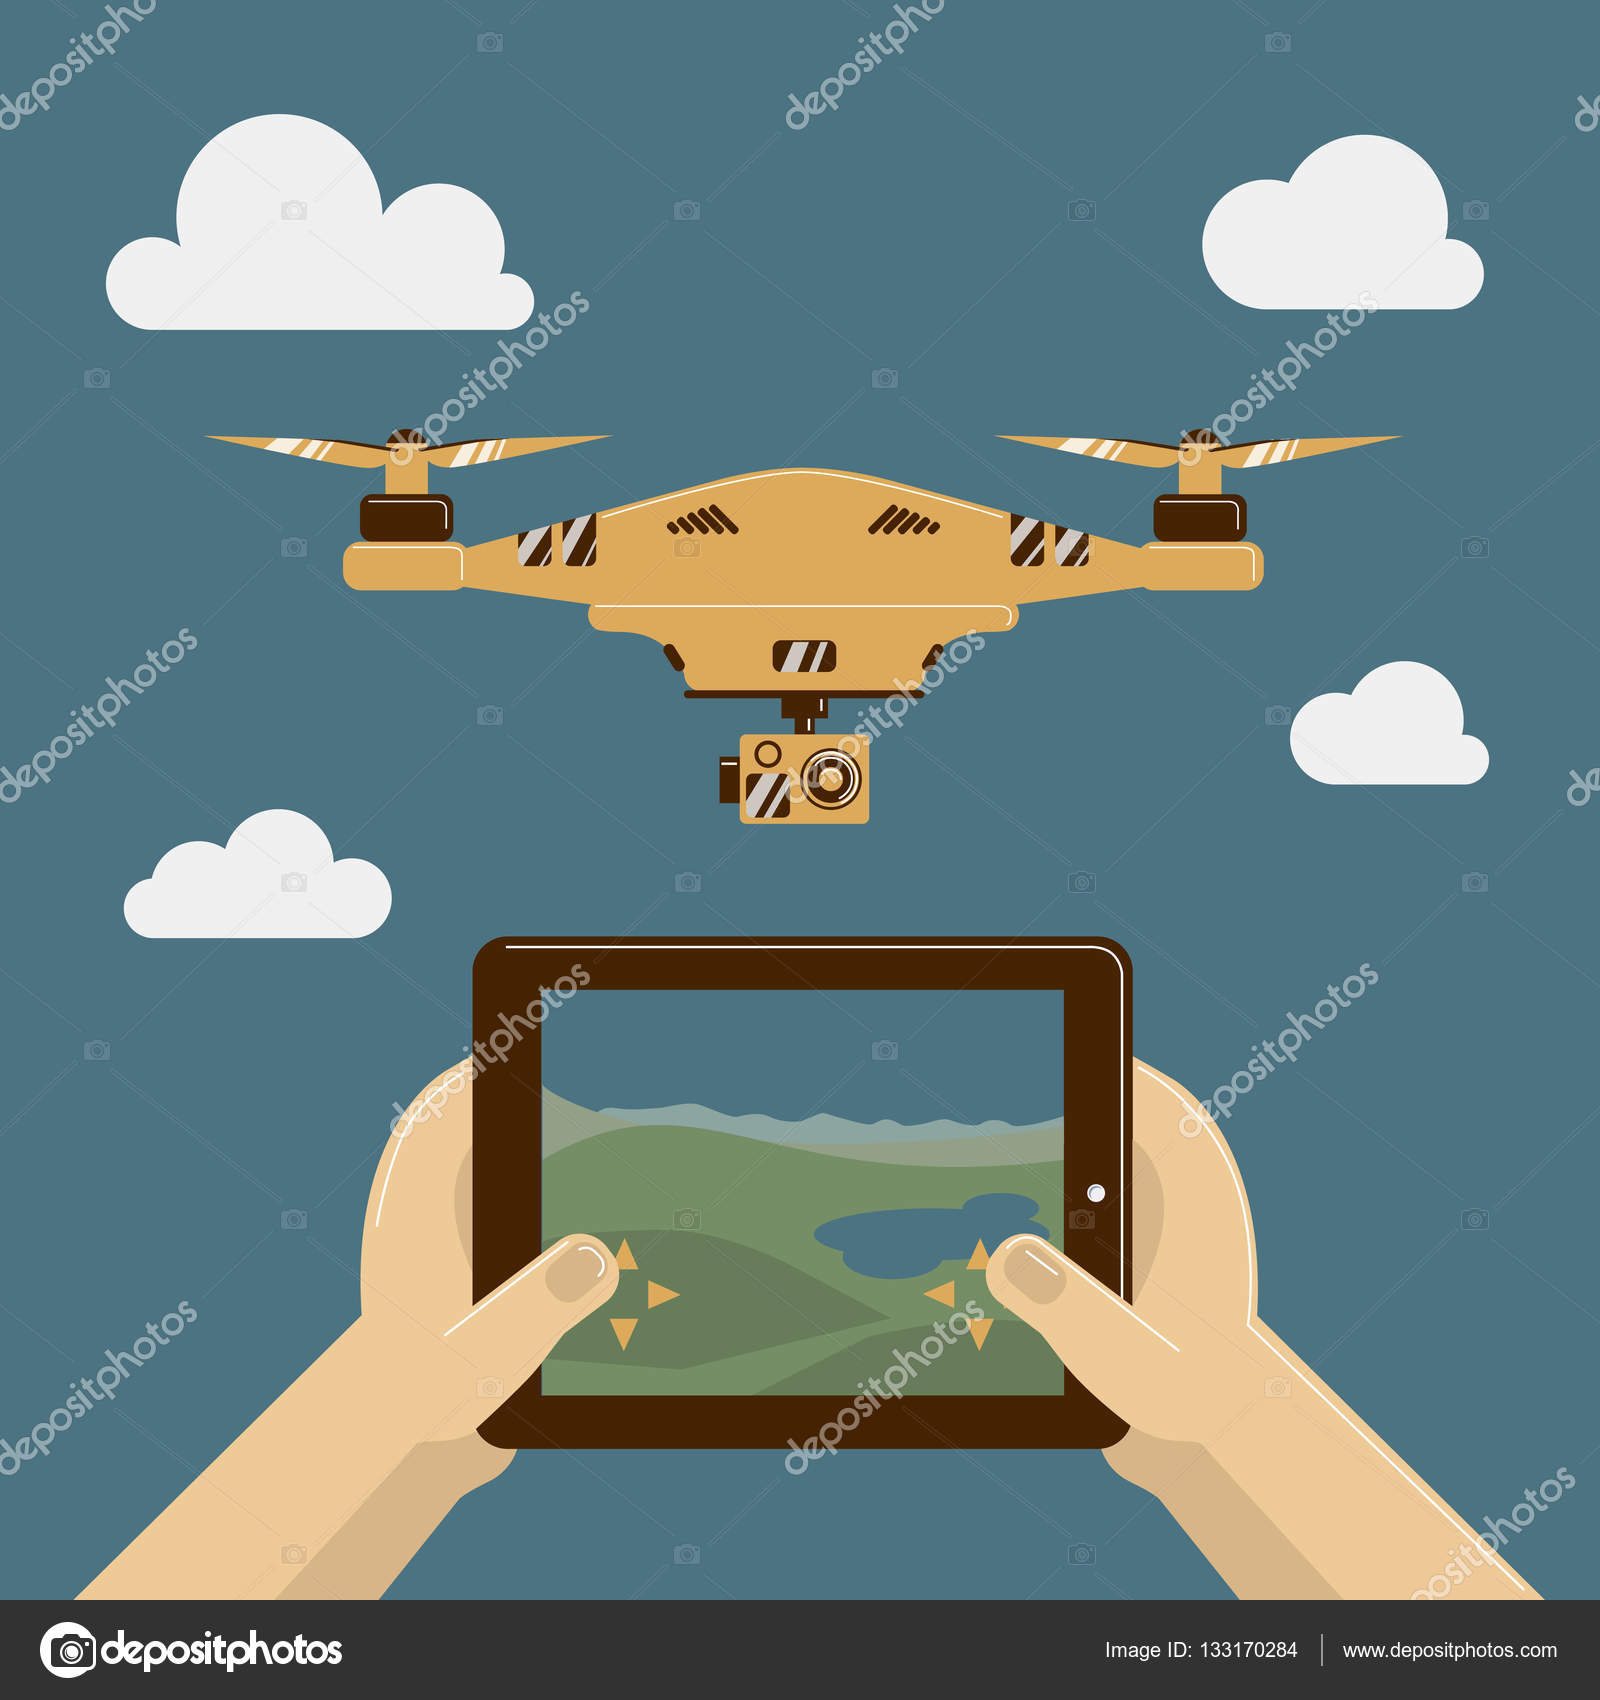 Vector Illustration with drone and remote control on tablet